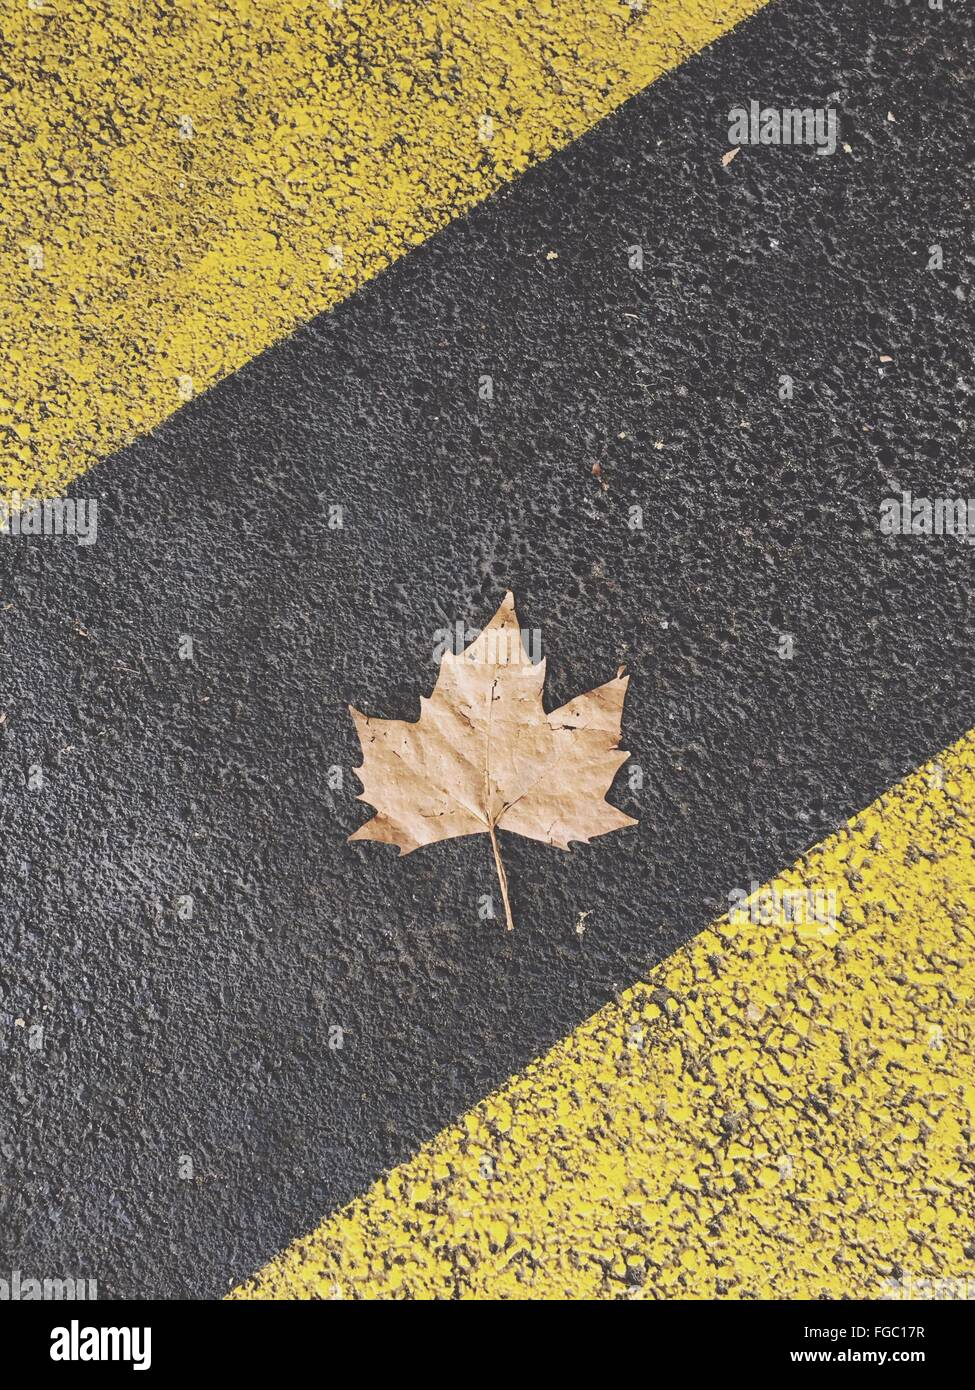 High Angle View Of Dry Maple Leaf On Street - Stock Image